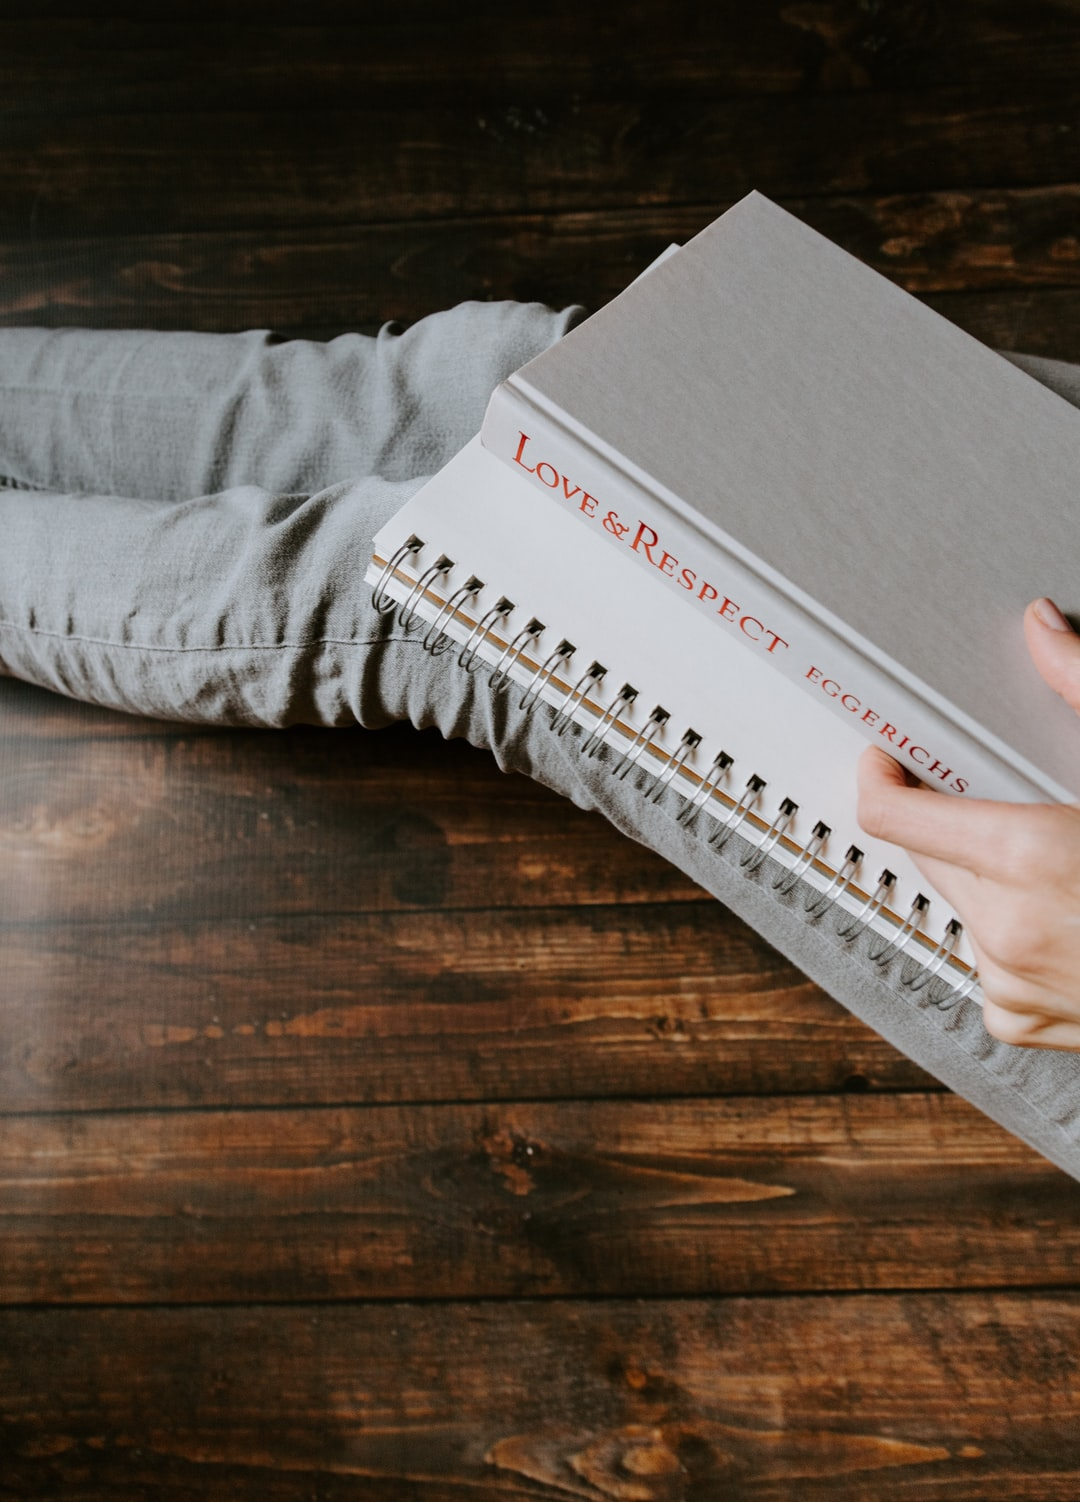 """Woman's lap holding book titled """"Love & Respect"""" and a notebook"""